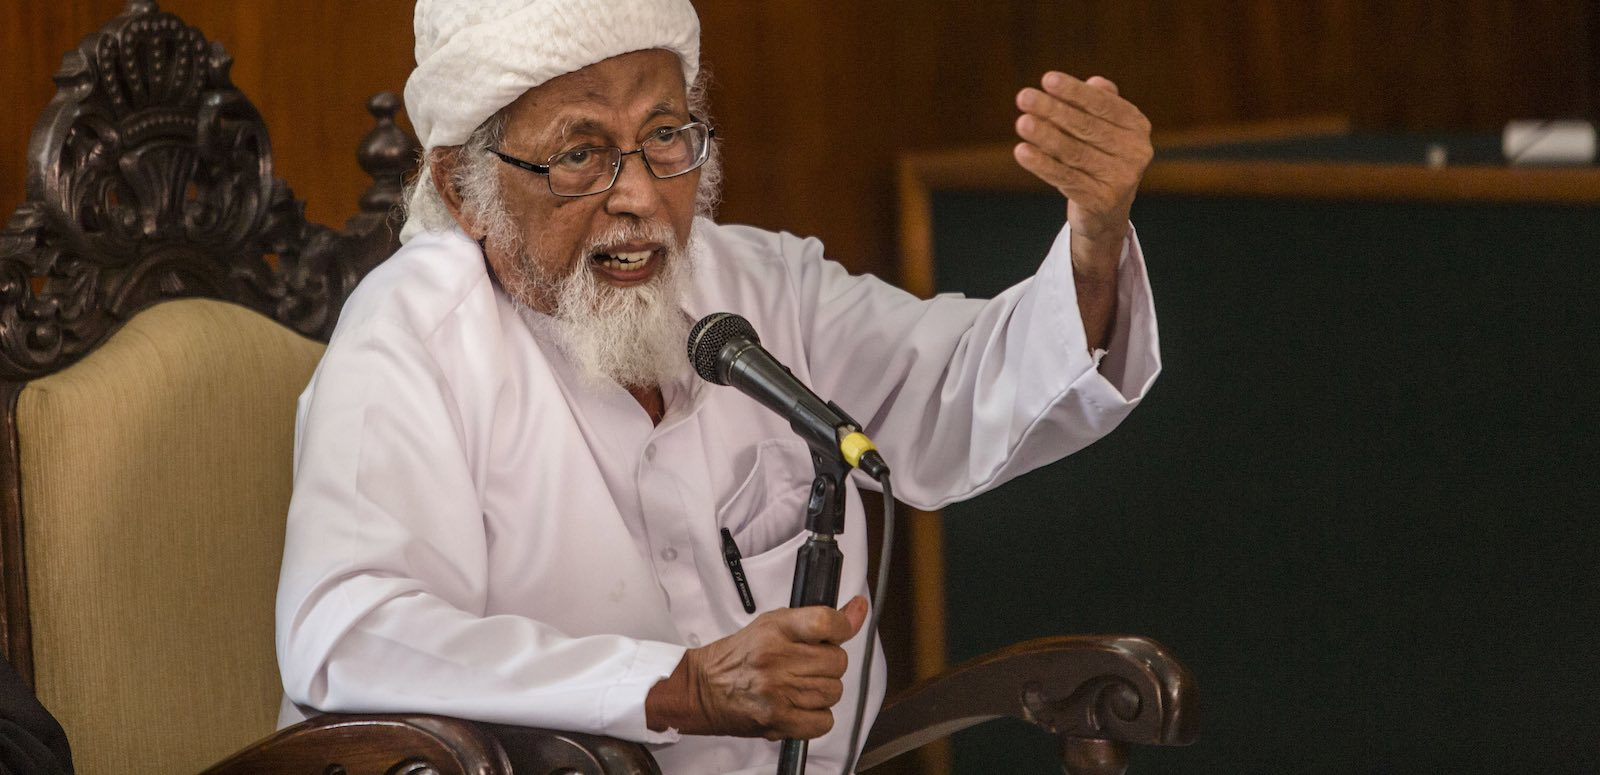 Abu Bakar Ba'asyir challenges his conviction at Cilacap District Court in January 2016 (Photo: Ulet Ifansasti/Getty)